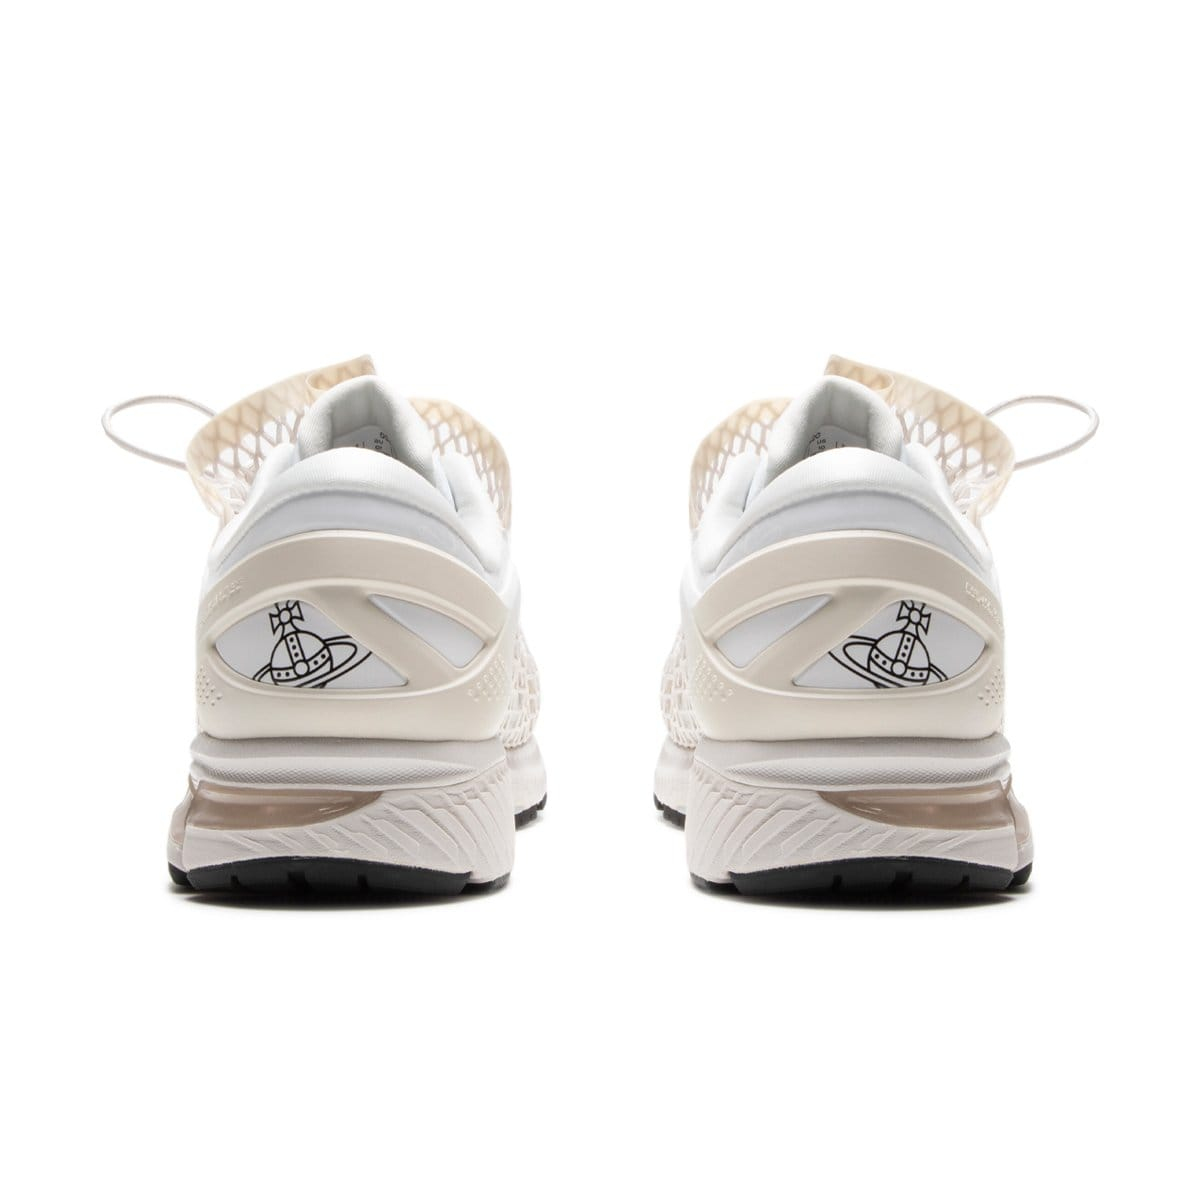 ASICS Shoes x Vivienne Westwood GEL-KAYANO 26